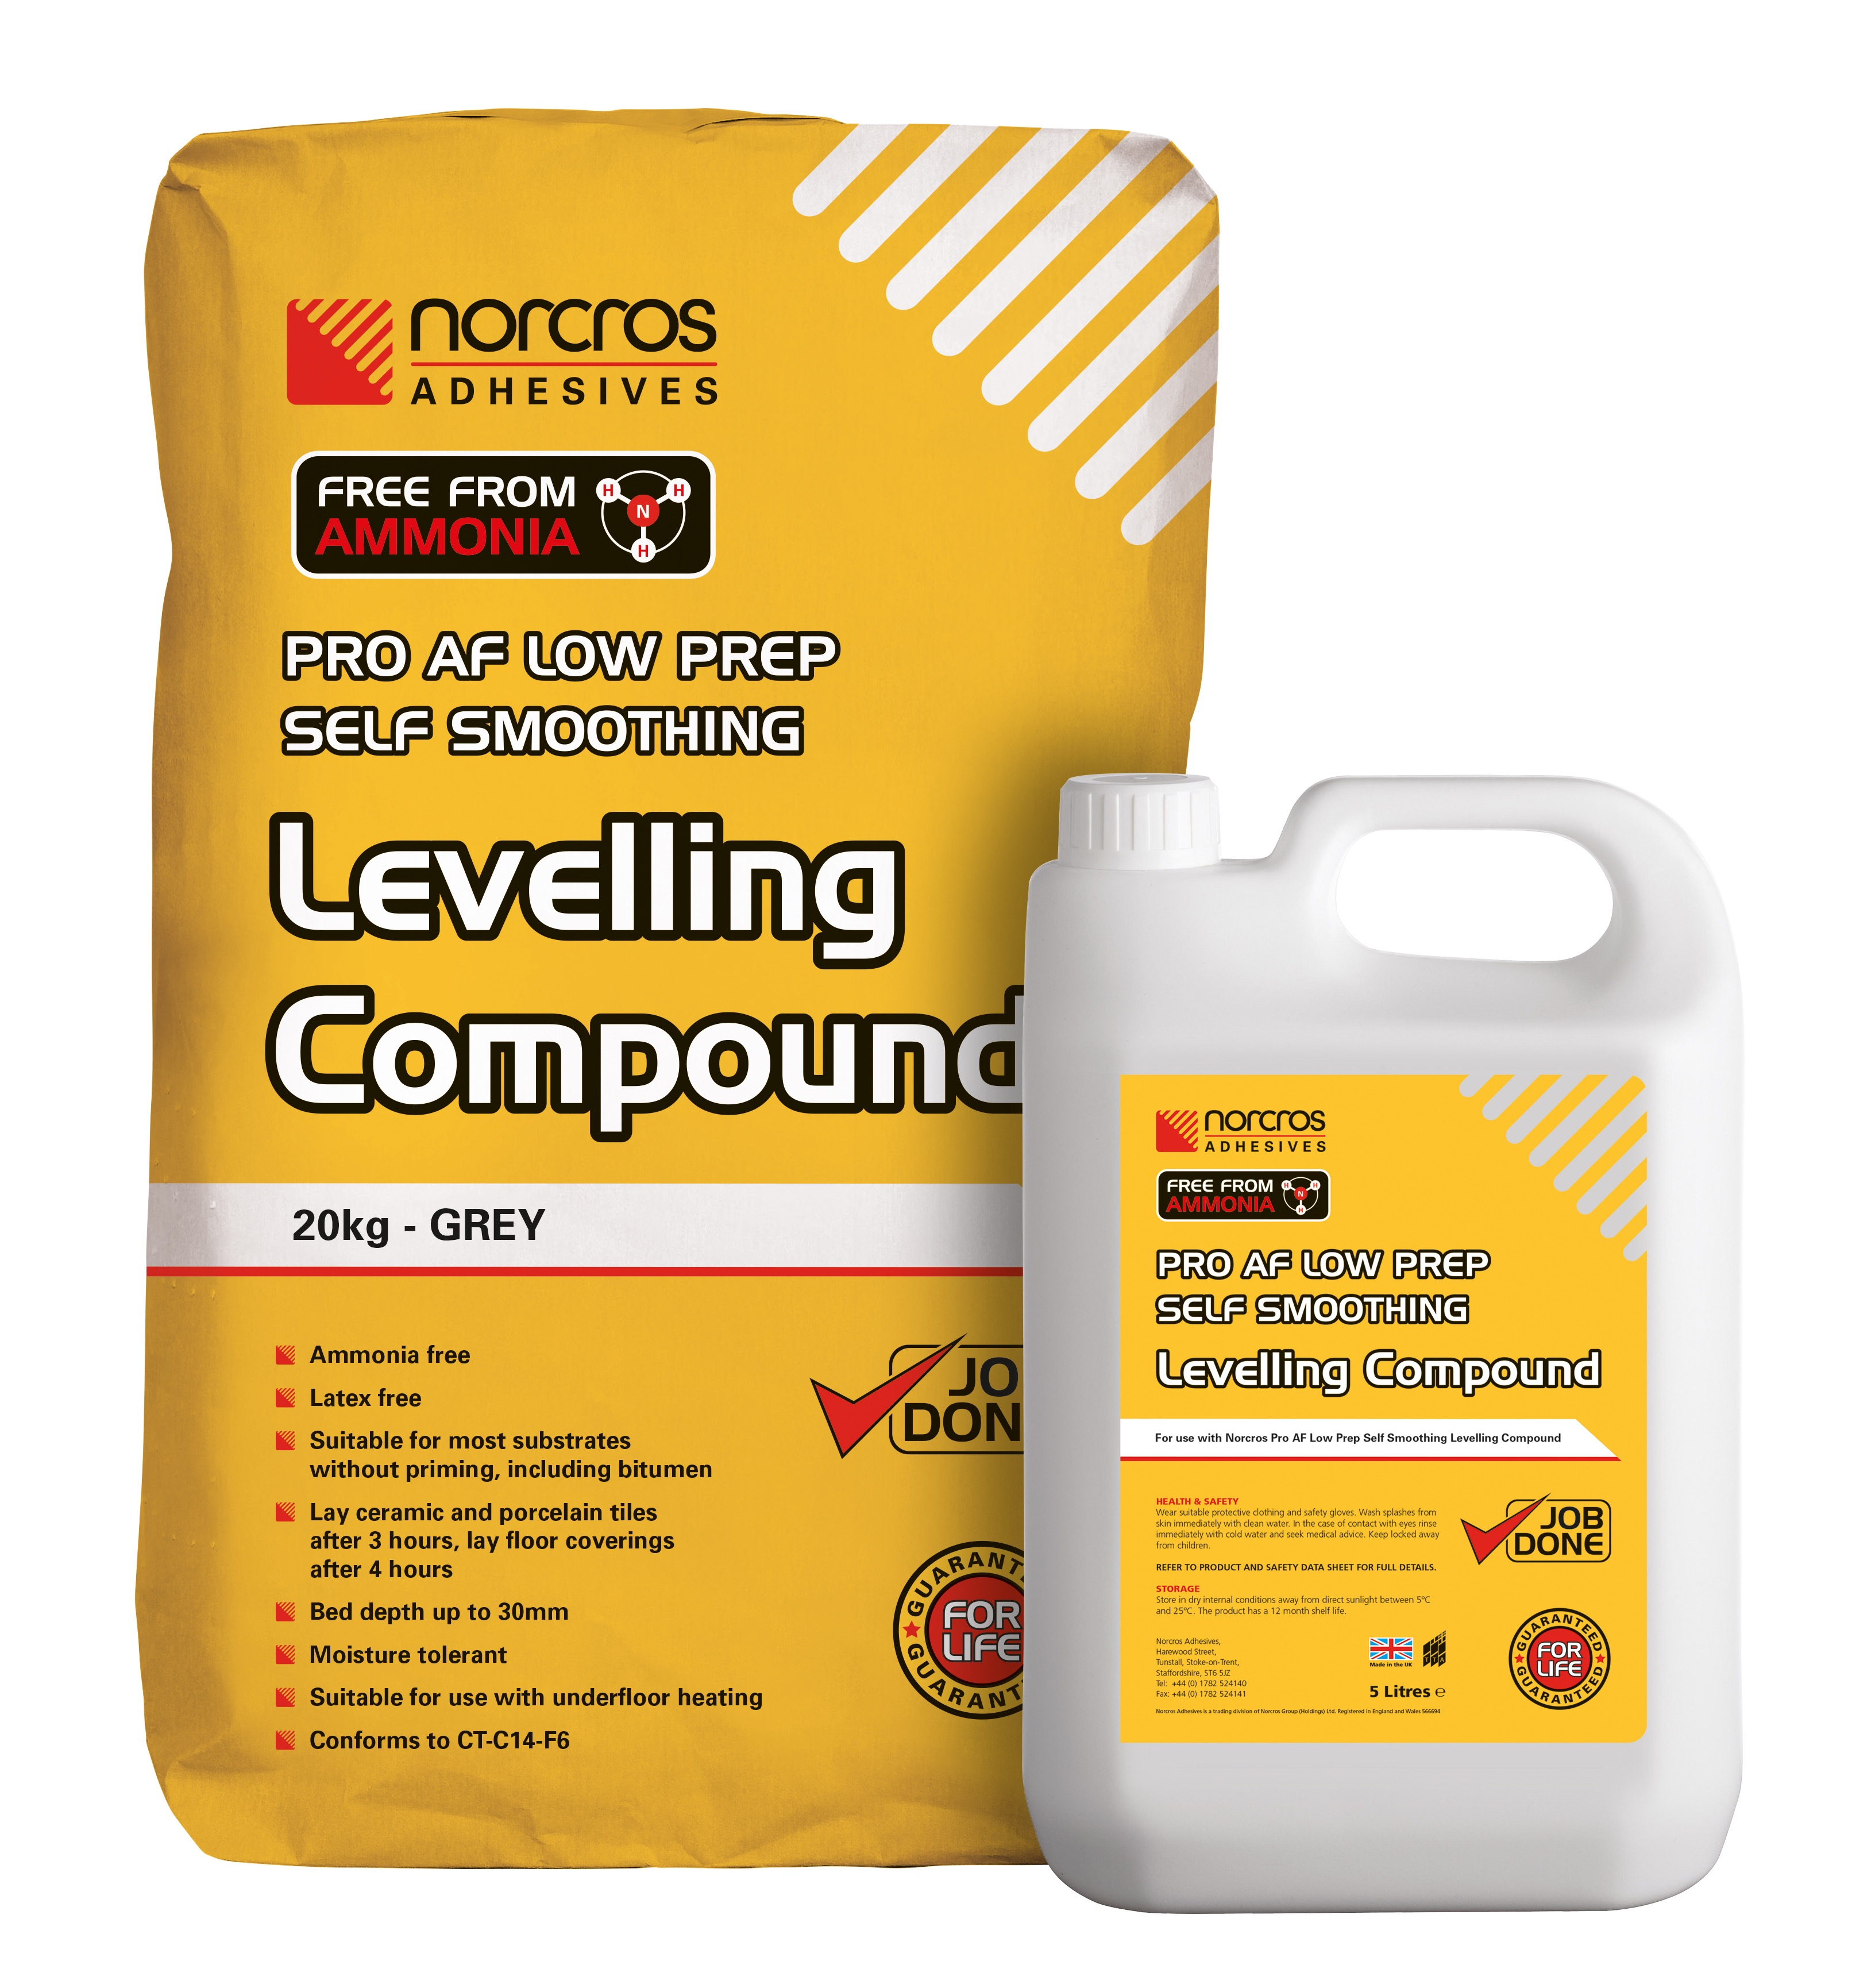 20kg bag of Pro AF Levelling Compound and 5L liquid container